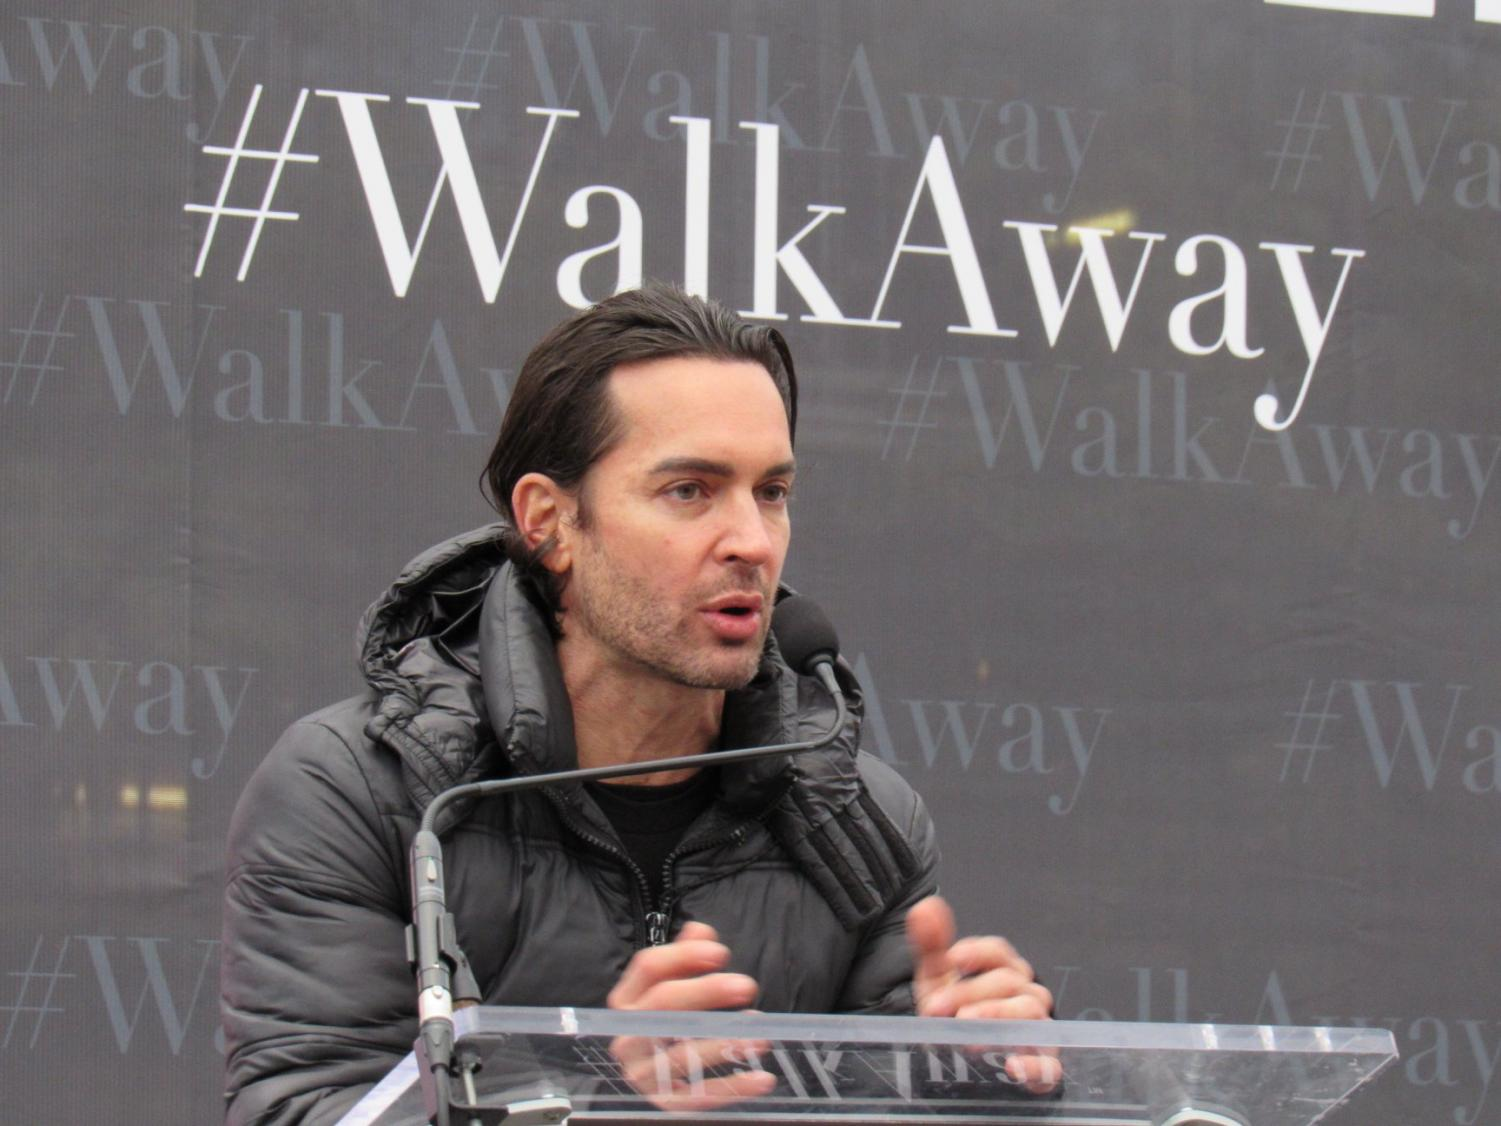 #WalkAway founder, Brandon Straka aims to increase awareness, but devout Democrats should not be worried. (Courtesy of Facebook)